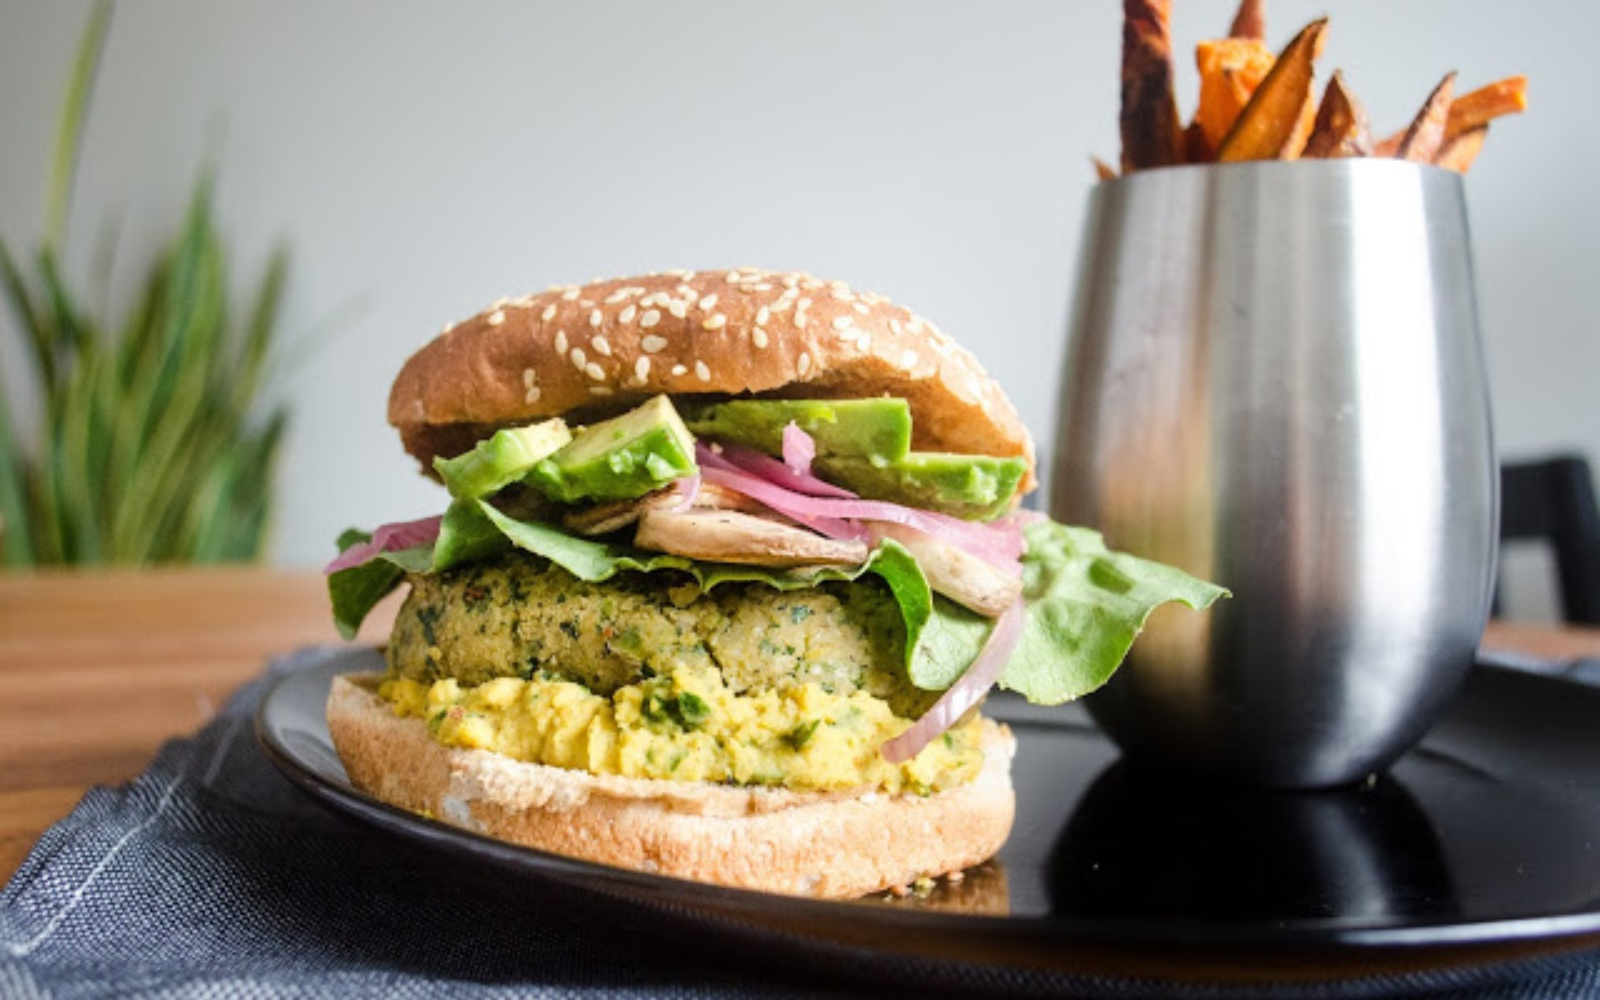 Kale and chickpea burger with sweet potato fries